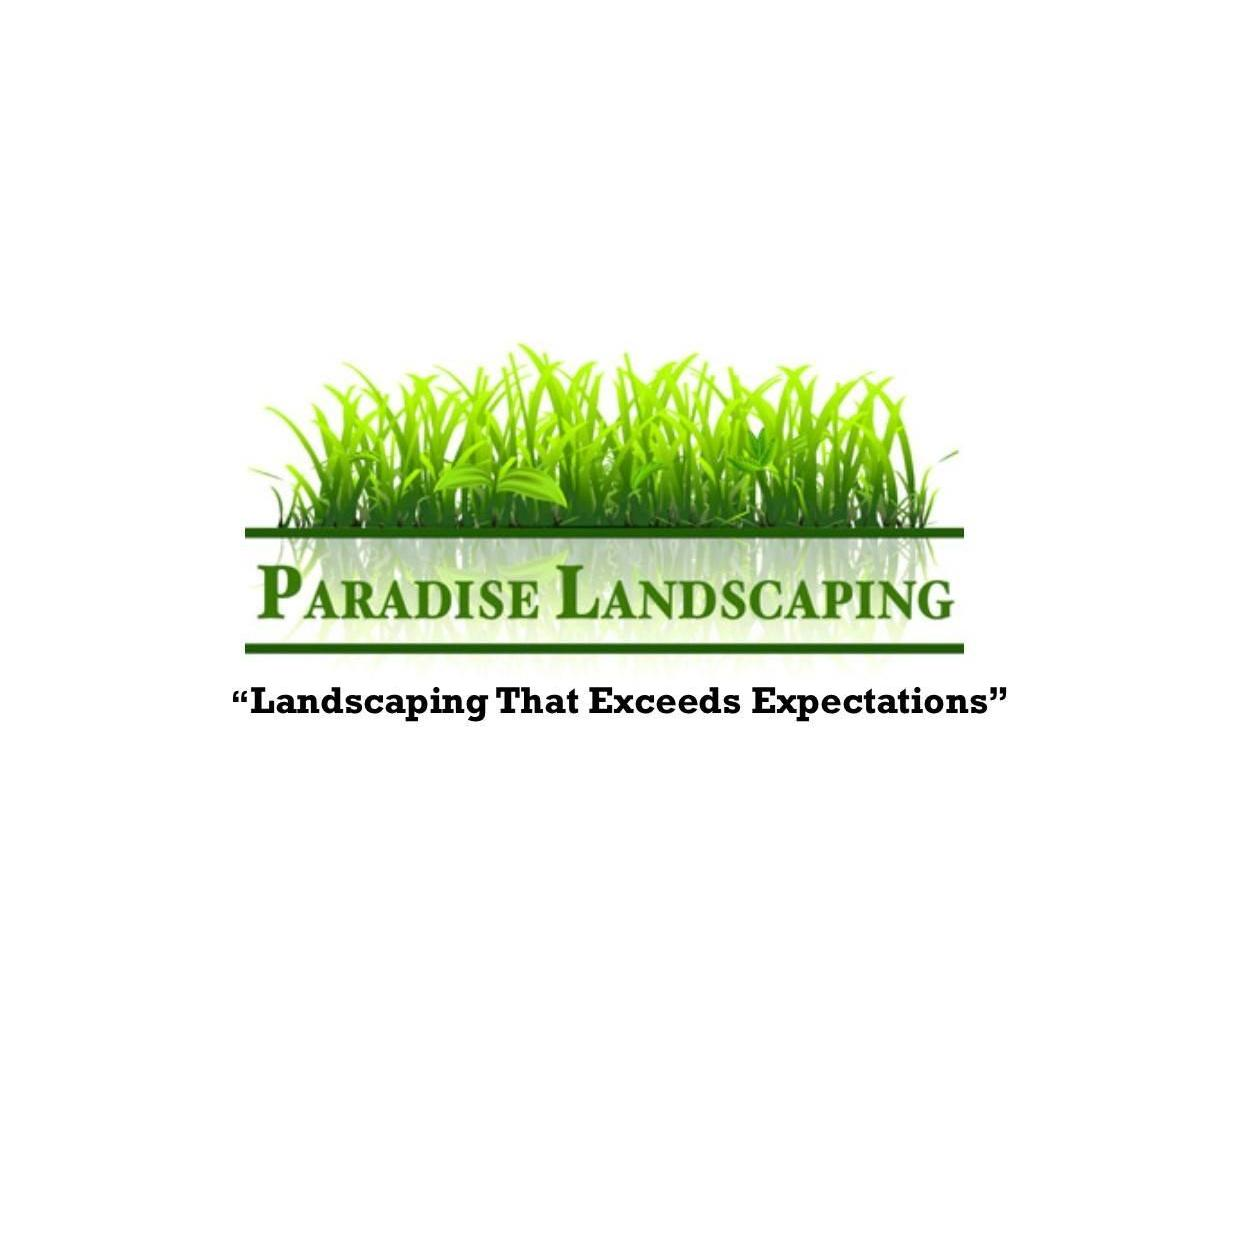 Paradise landscaping design llc coupons near me in for Garden designers near me